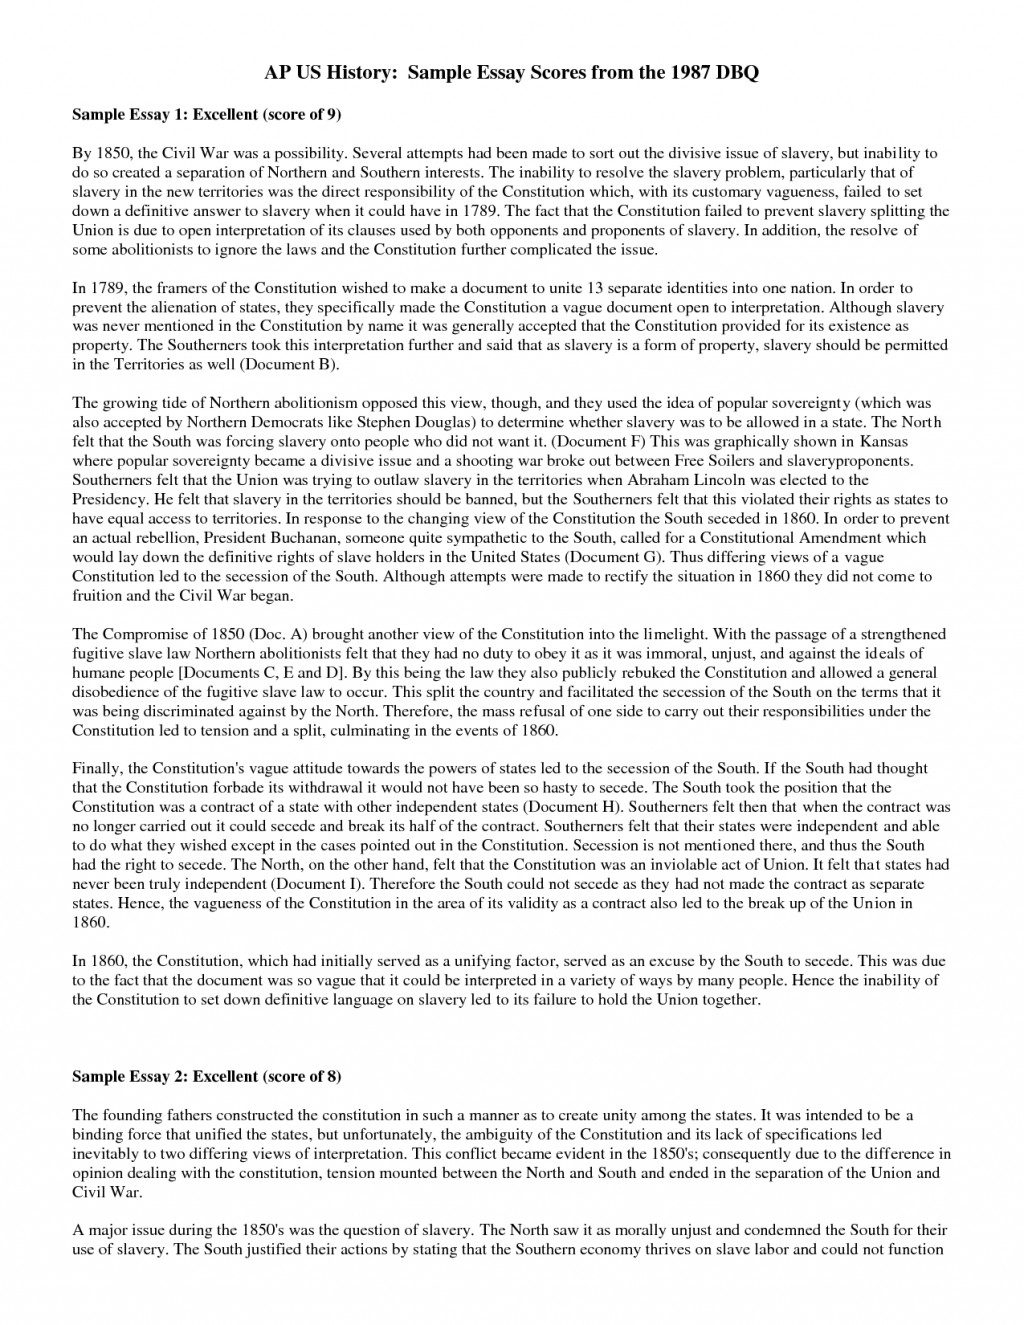 001 Ybw4oskdzu Essay Example What Is Unique History World Film Large